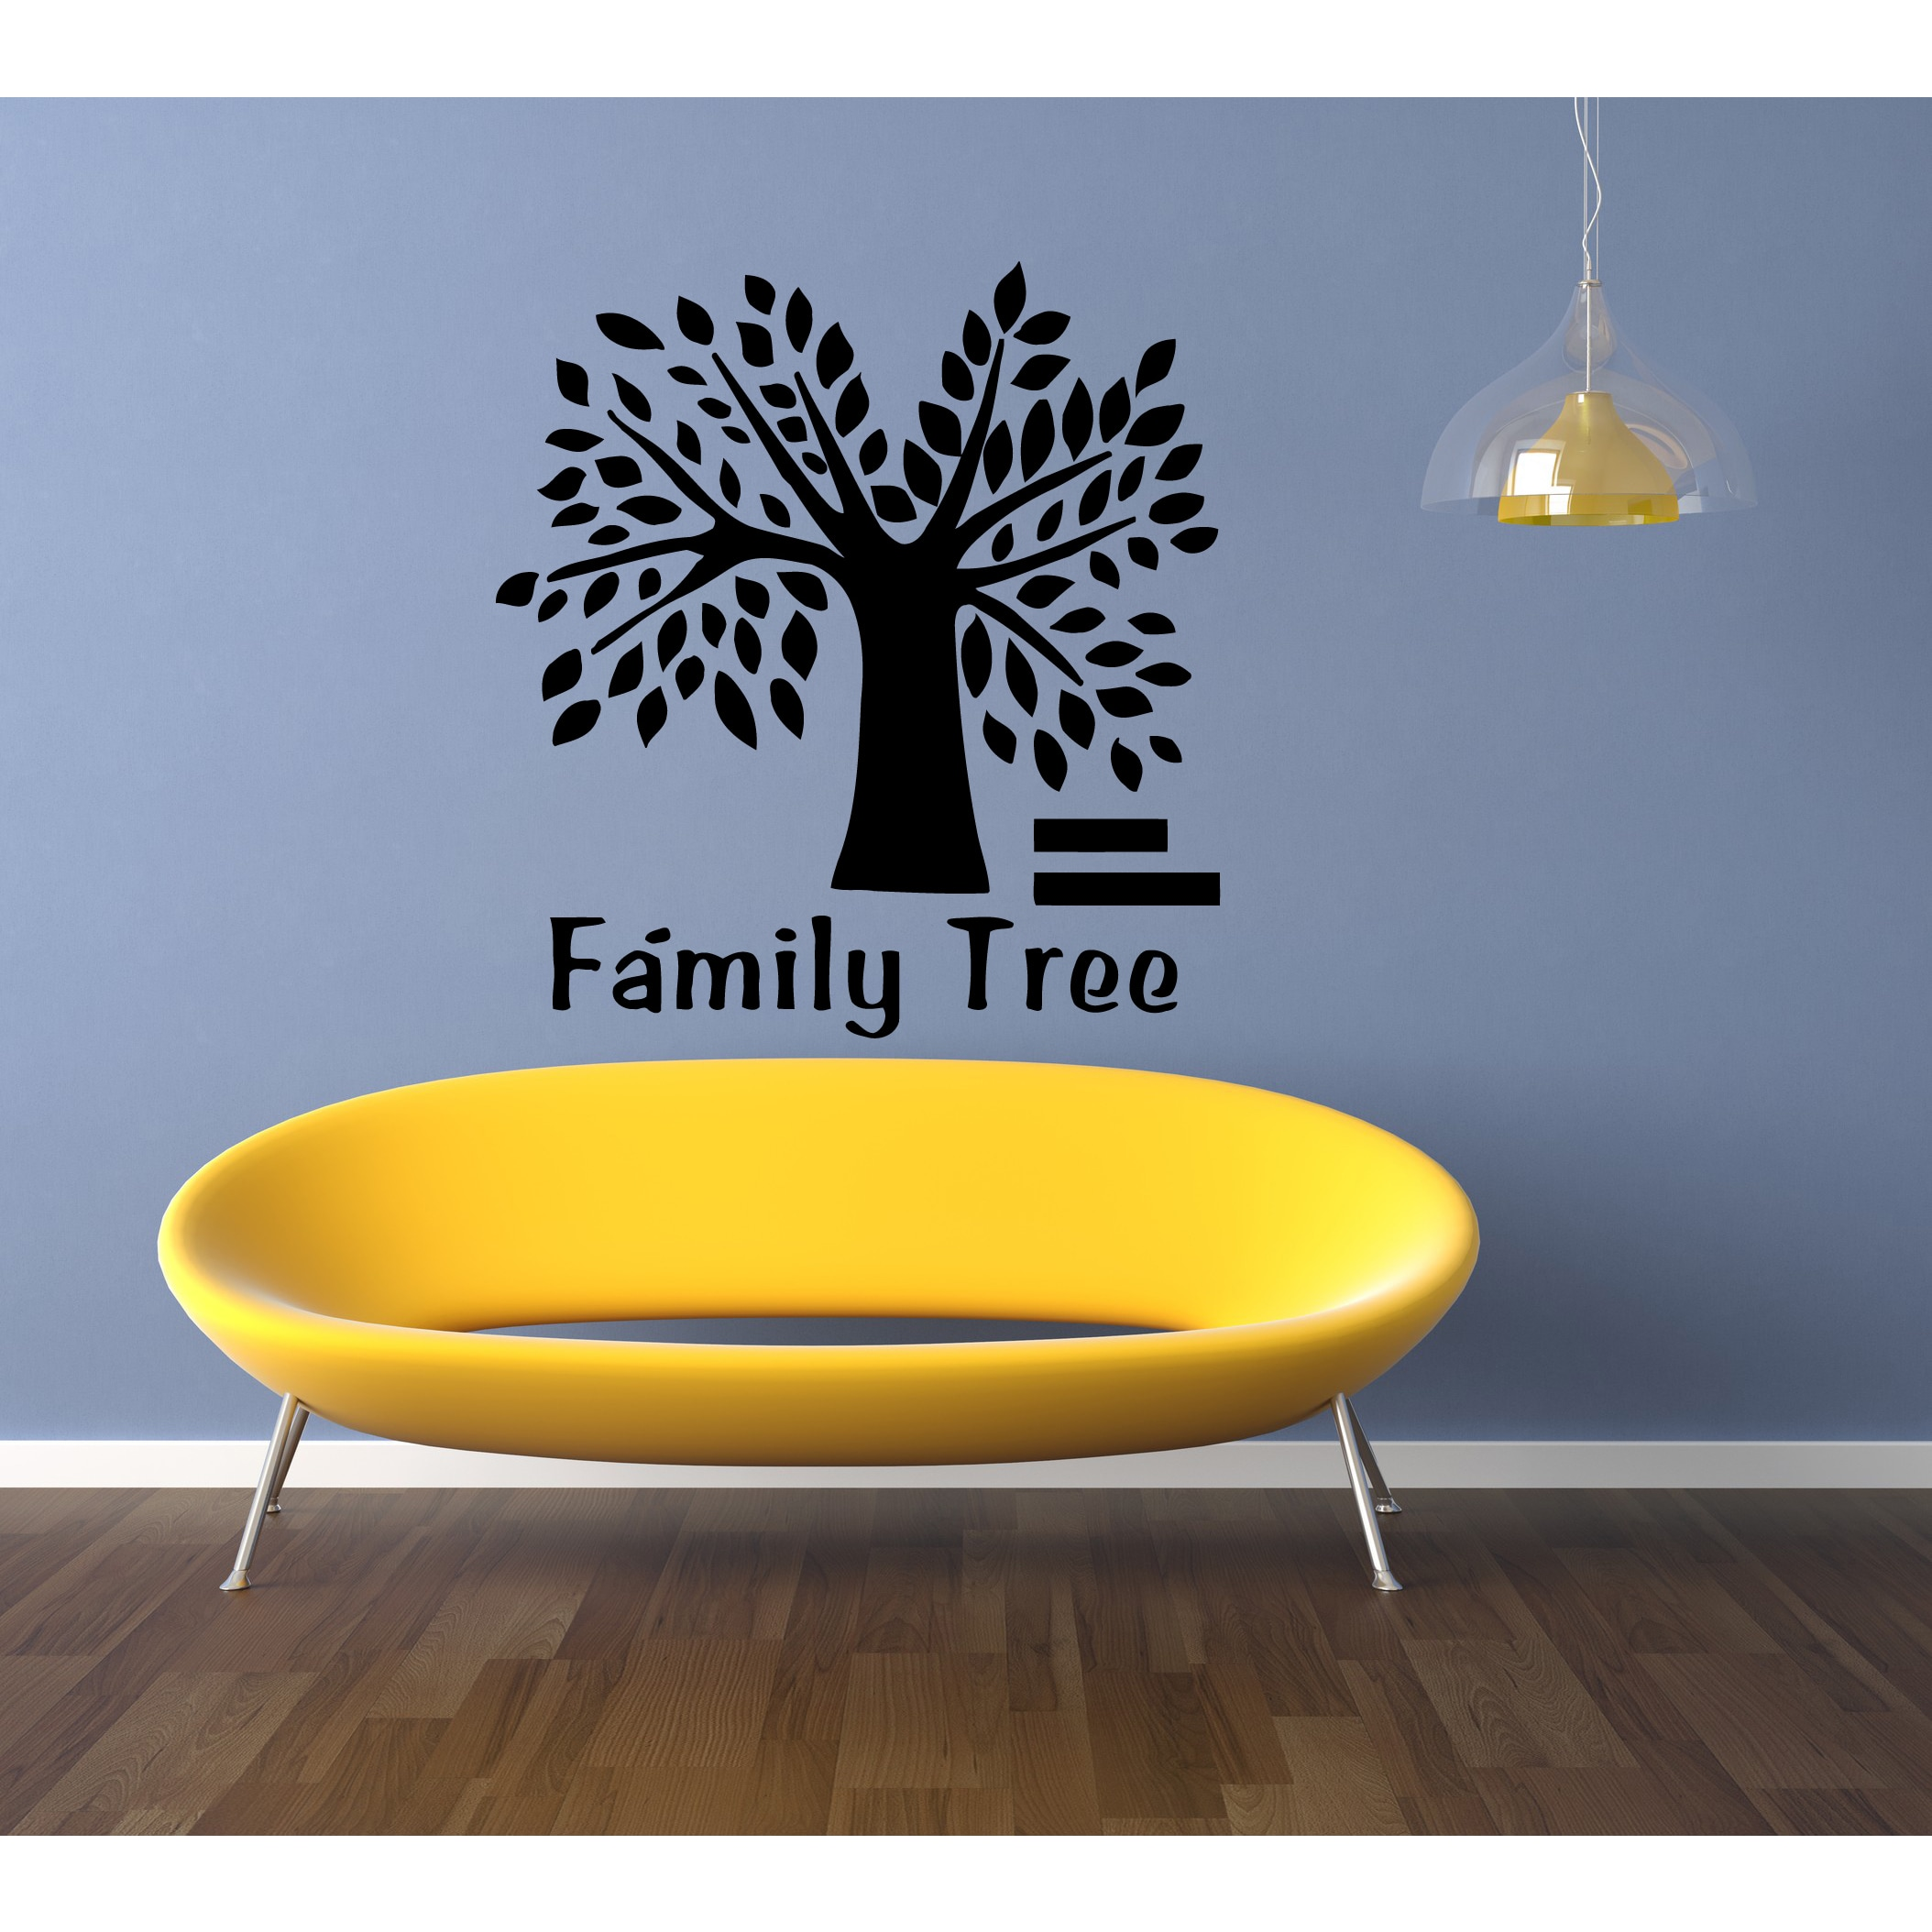 Family tree wall art decal | Decor | Compare Prices at Nextag